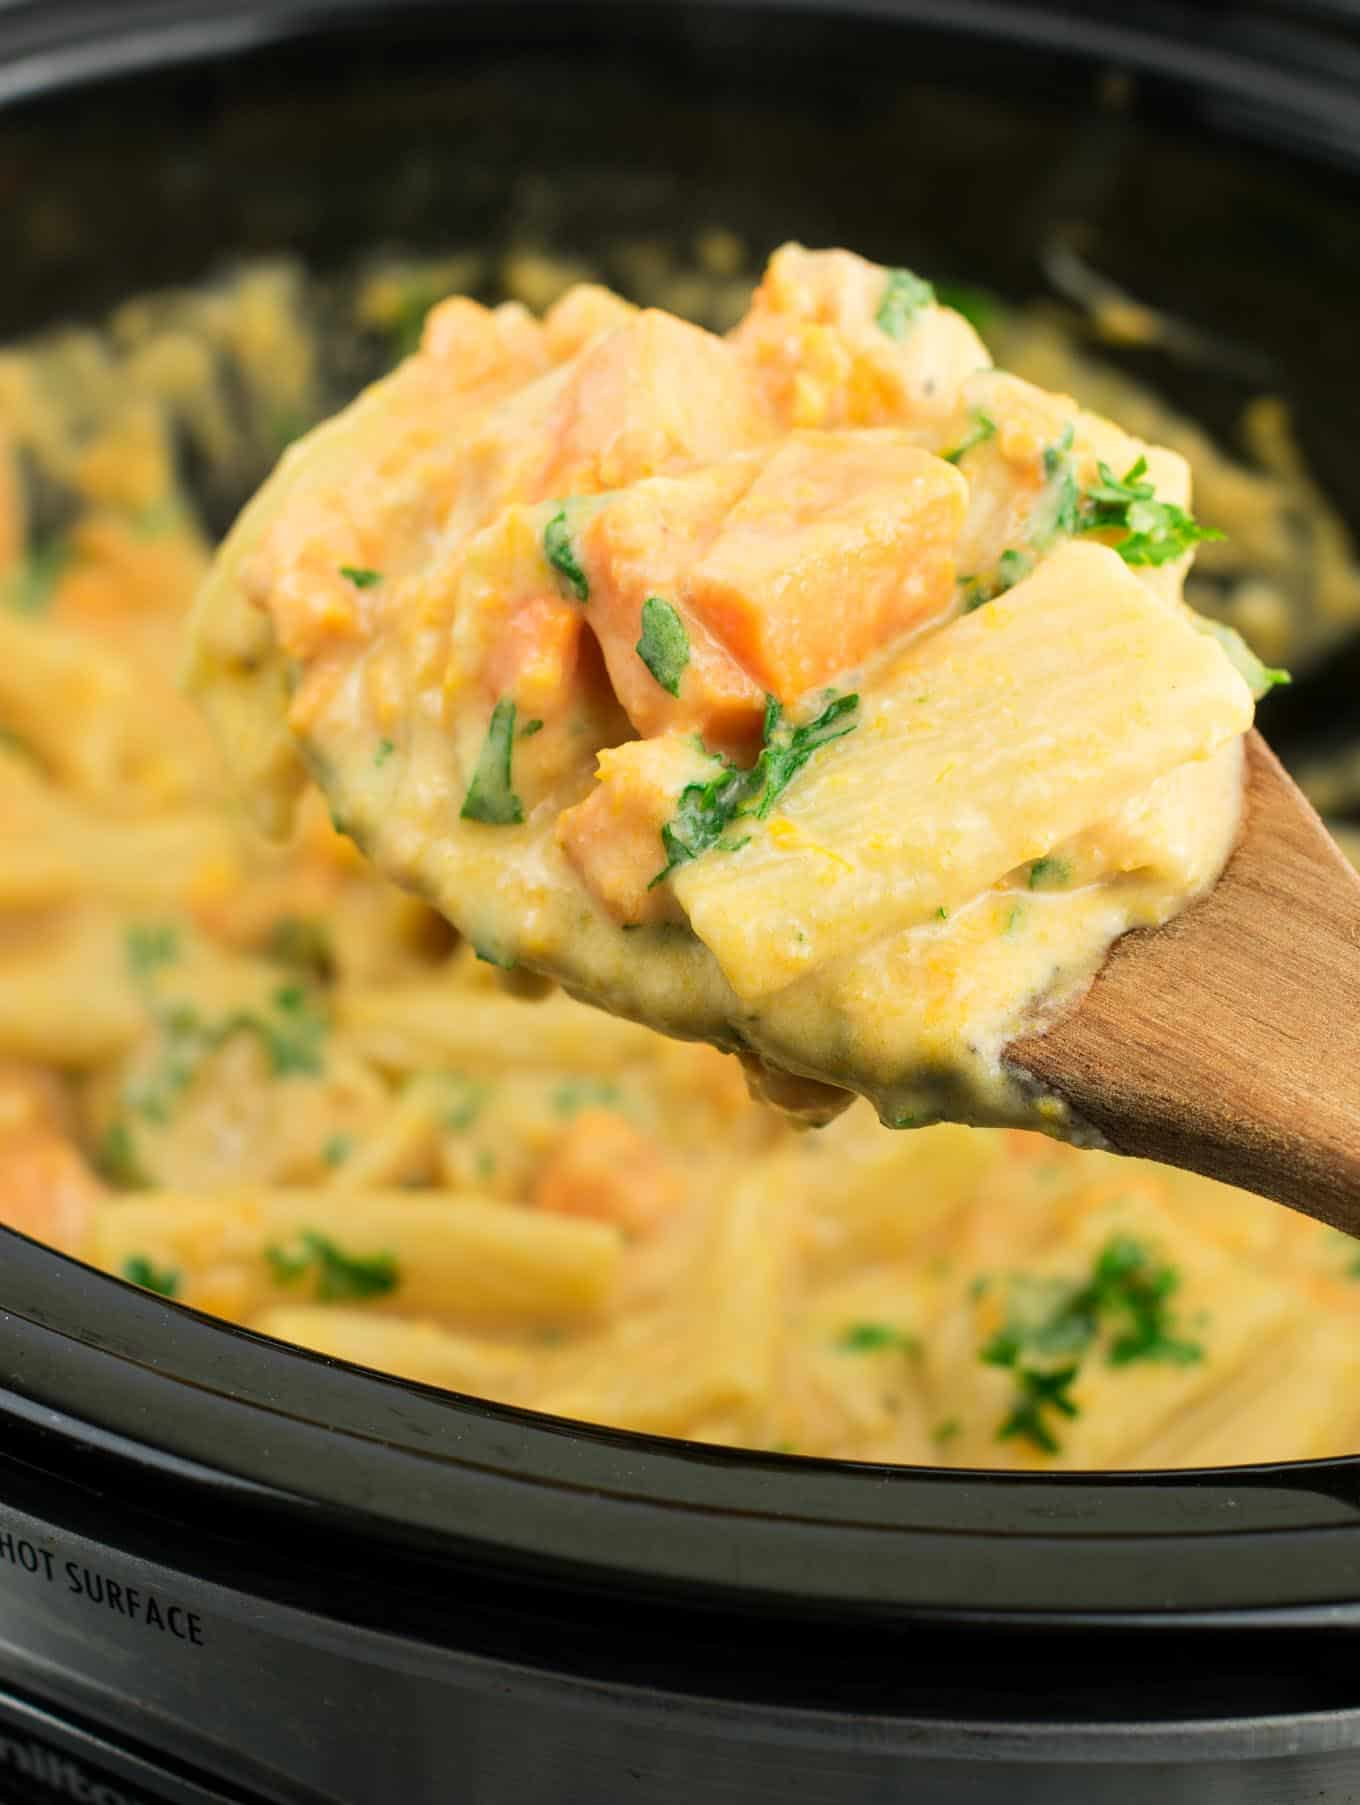 Easy crockpot alfredo pasta recipe with sweet potatoes. Just 8 ingredients and 10 minutes of prep to make this delicious slow cooker pasta!